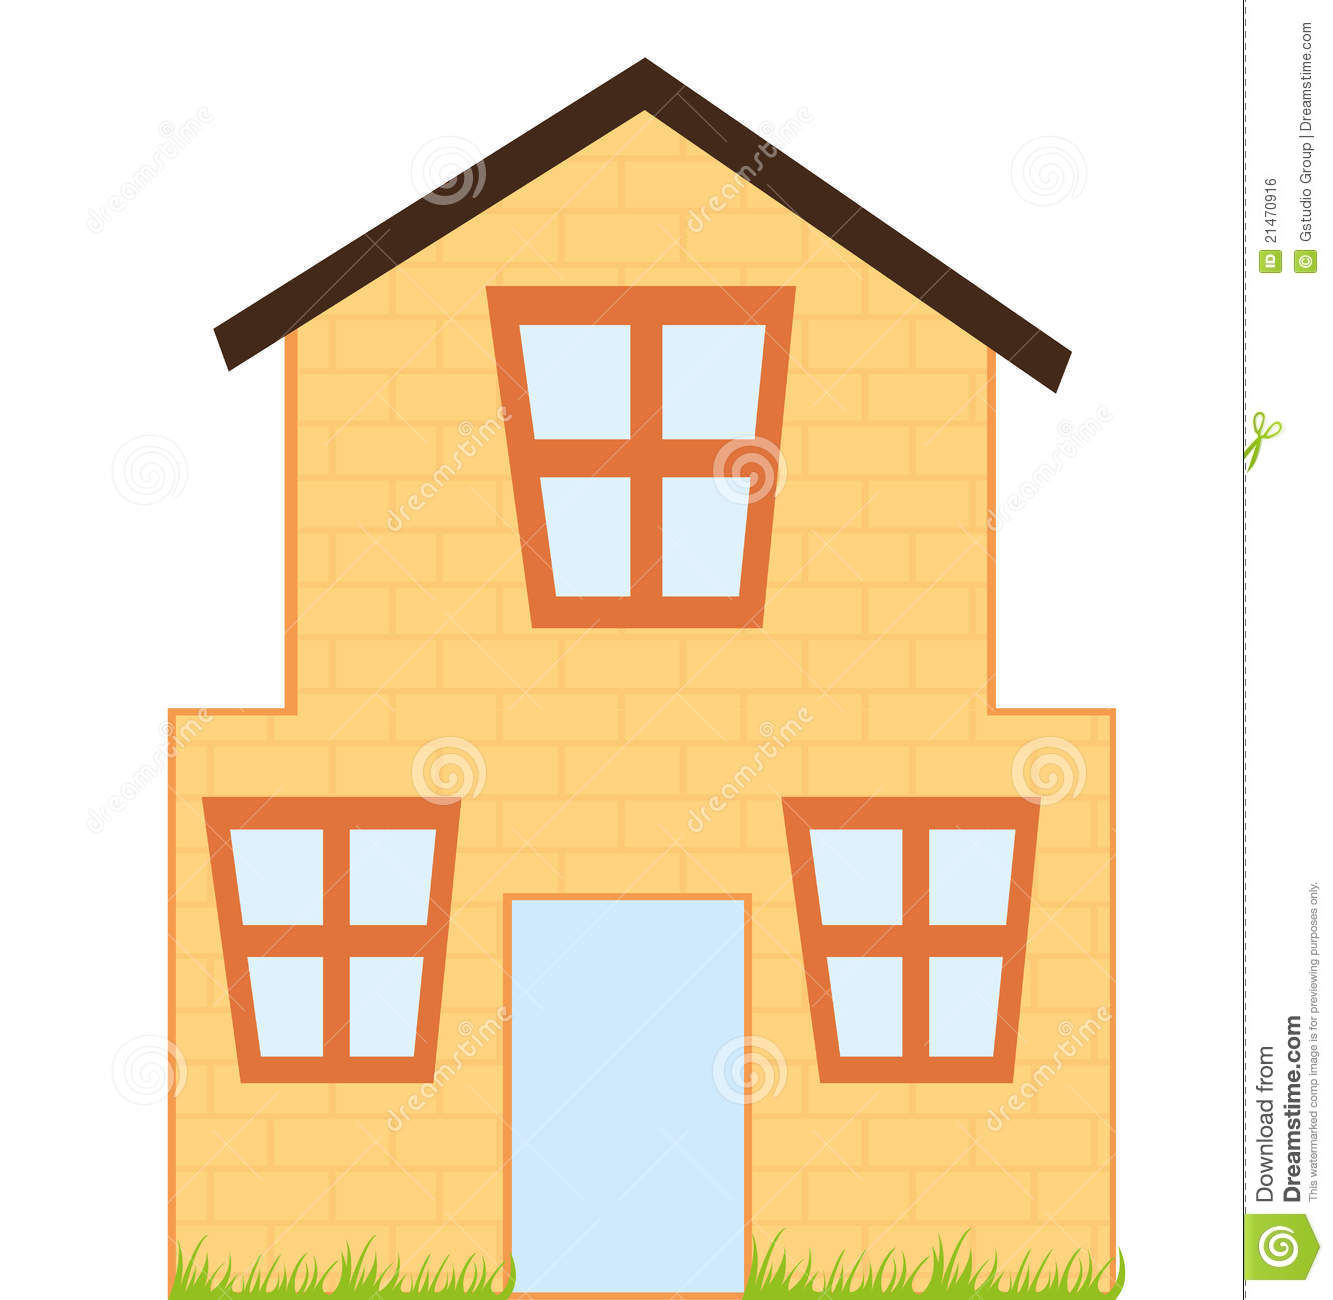 House Cartoon Stock Vector Image Of Real Home Landscape